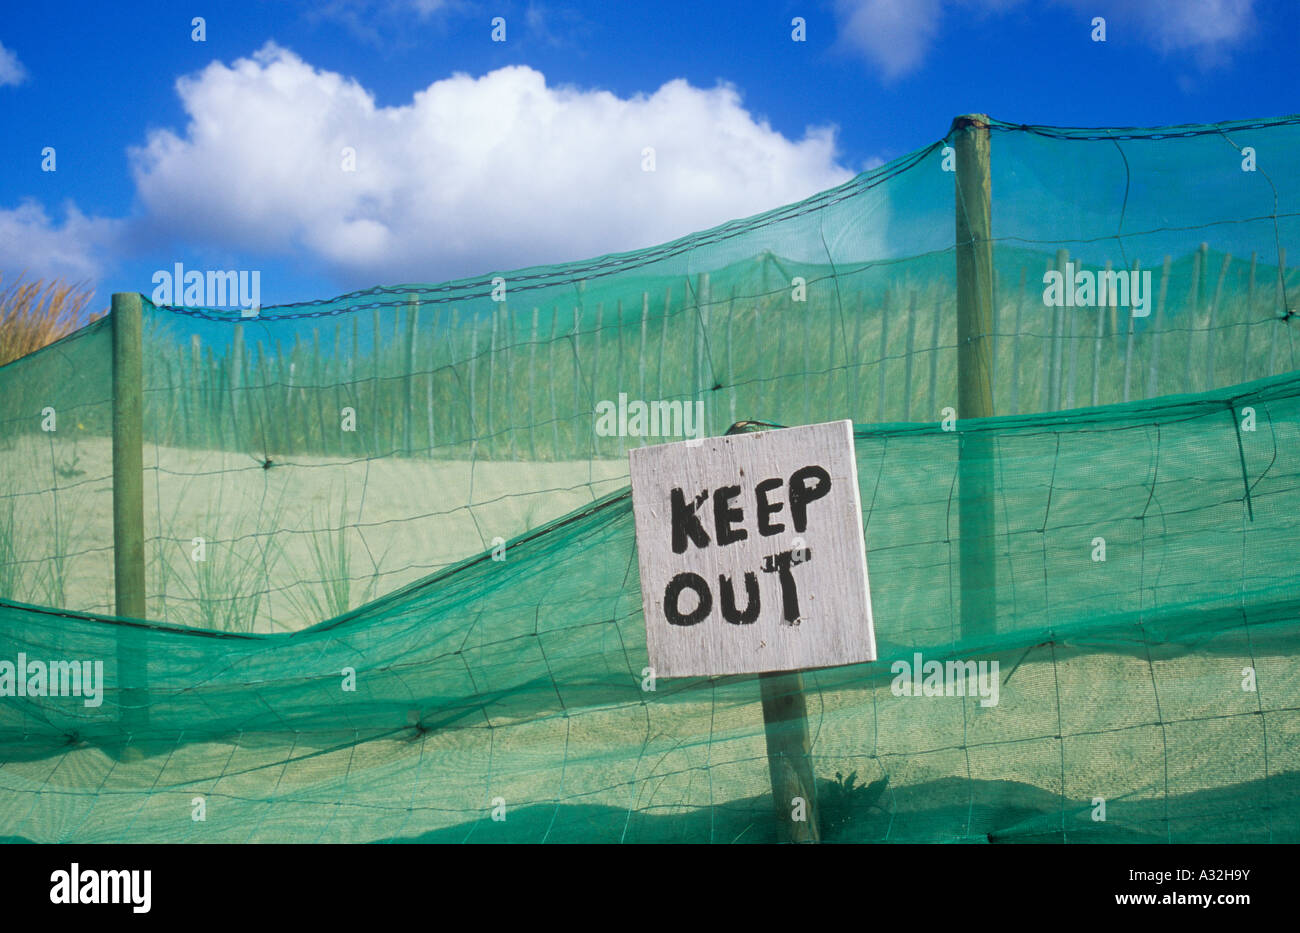 Rough handpainted sign stating Keep out in front of green nylon netting and wire and sheep fencing on sand dunes Stock Photo